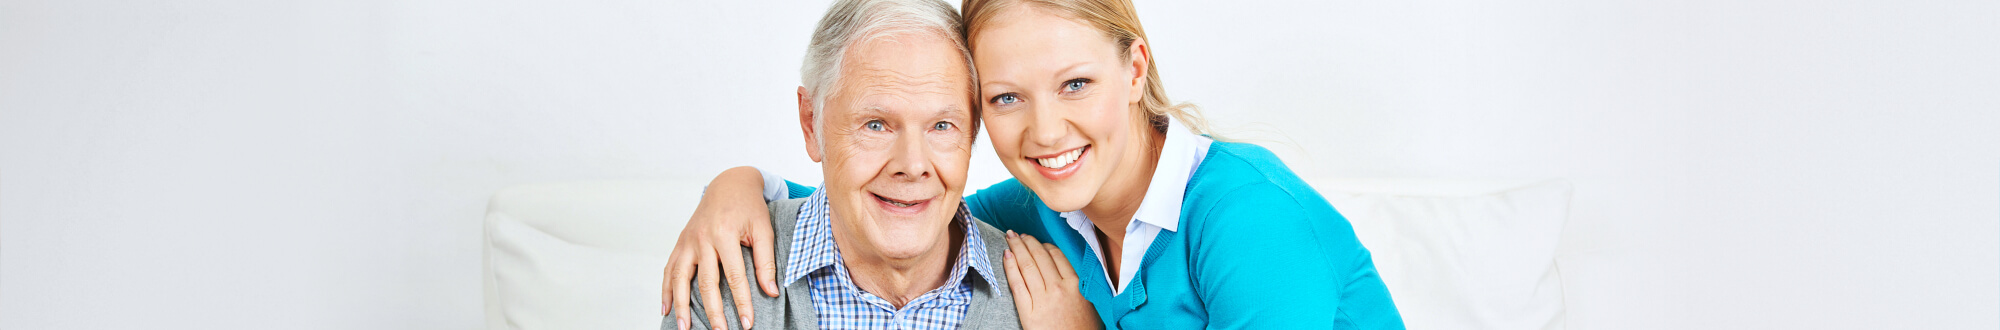 elderly and woman smiling